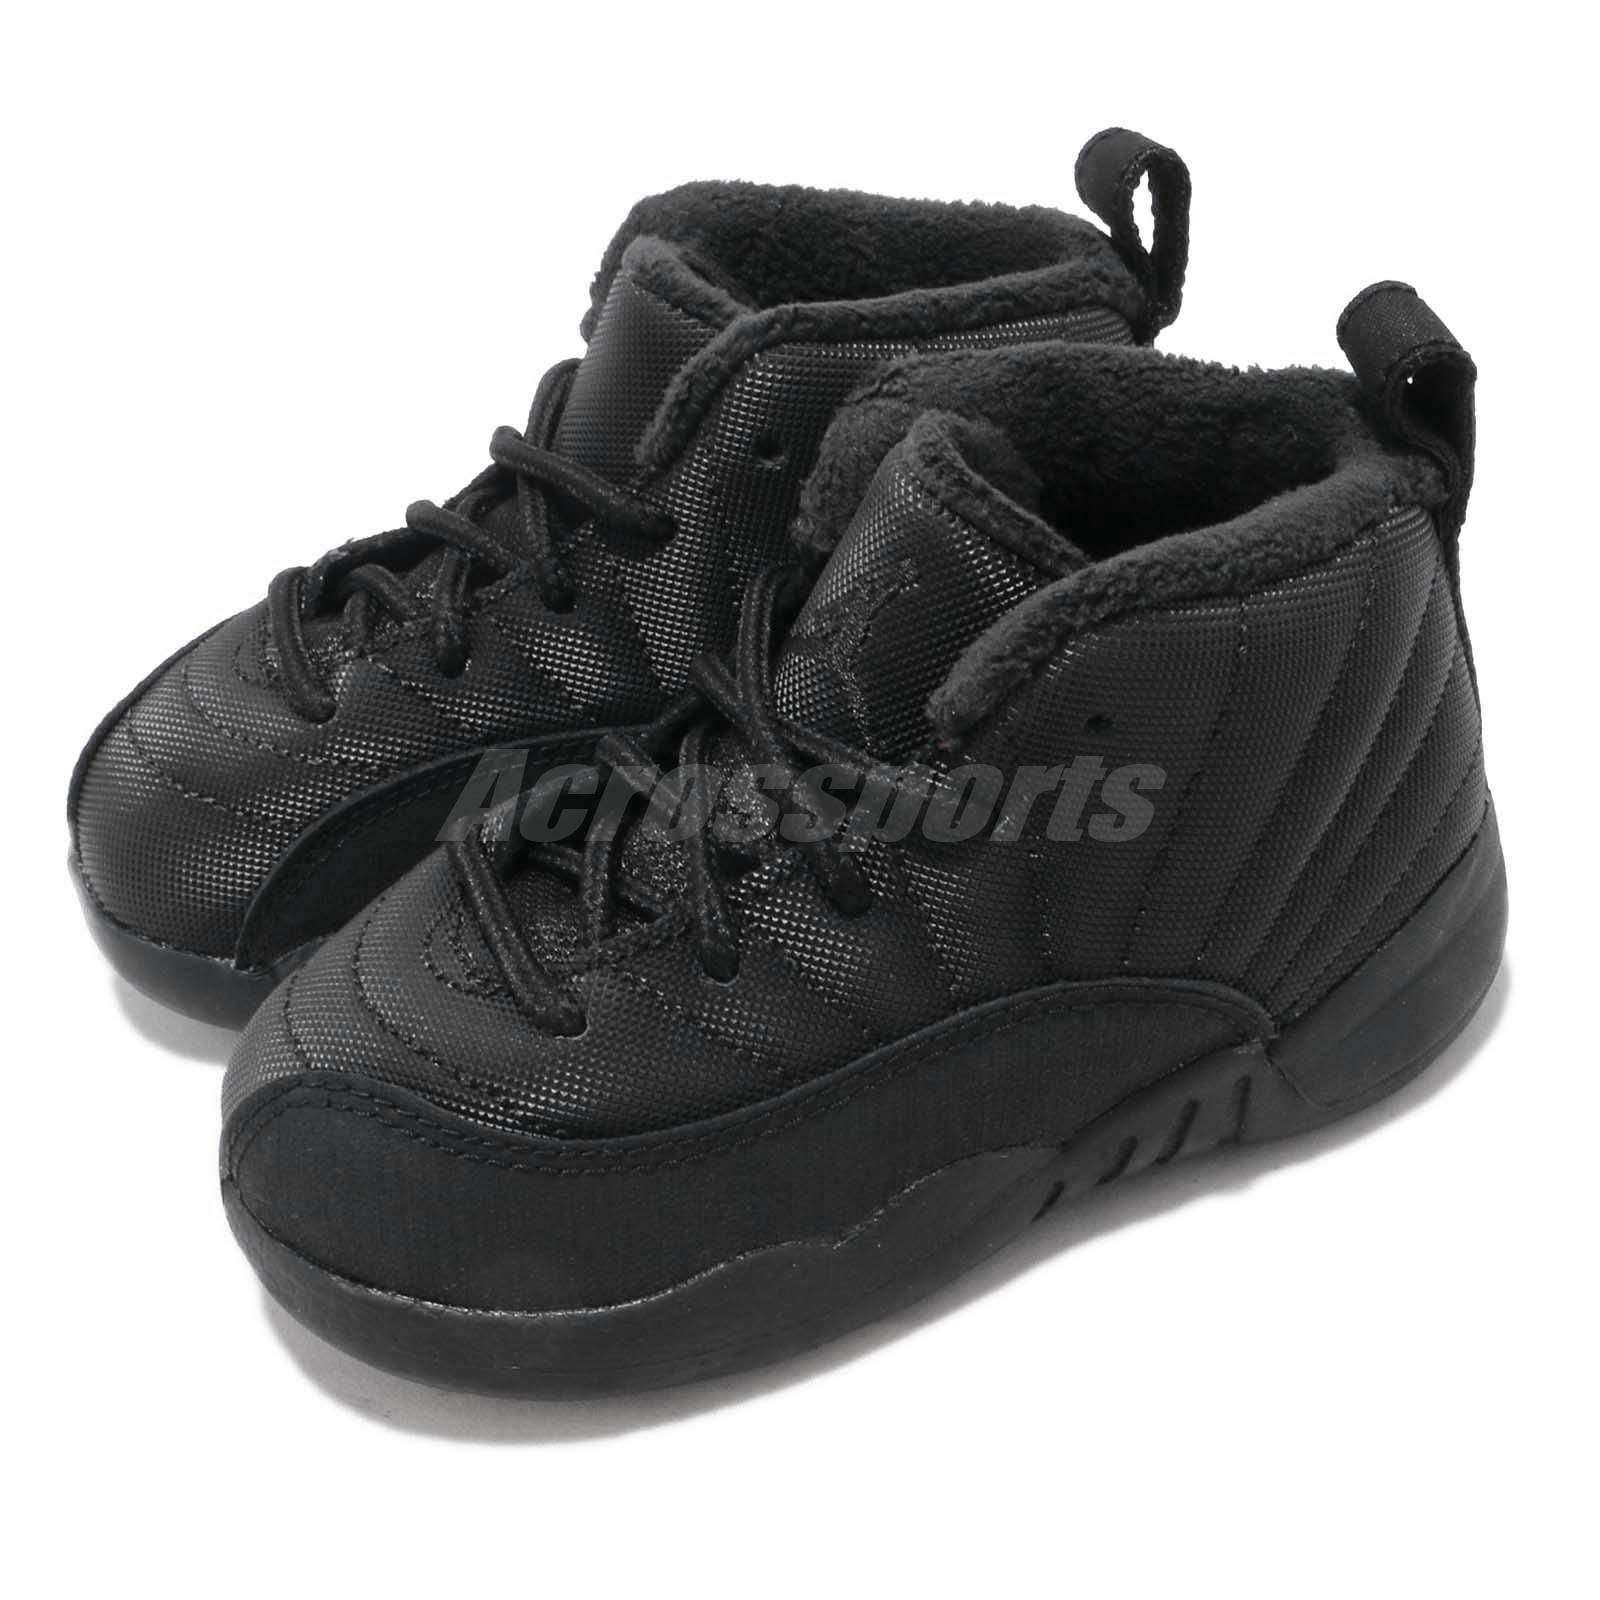 new styles eeb92 181b6 Details about Nike Jordan 12 Retro WNTR TD Winterized AJ12 XII Toddler  Infant Shoes BQ6853-001